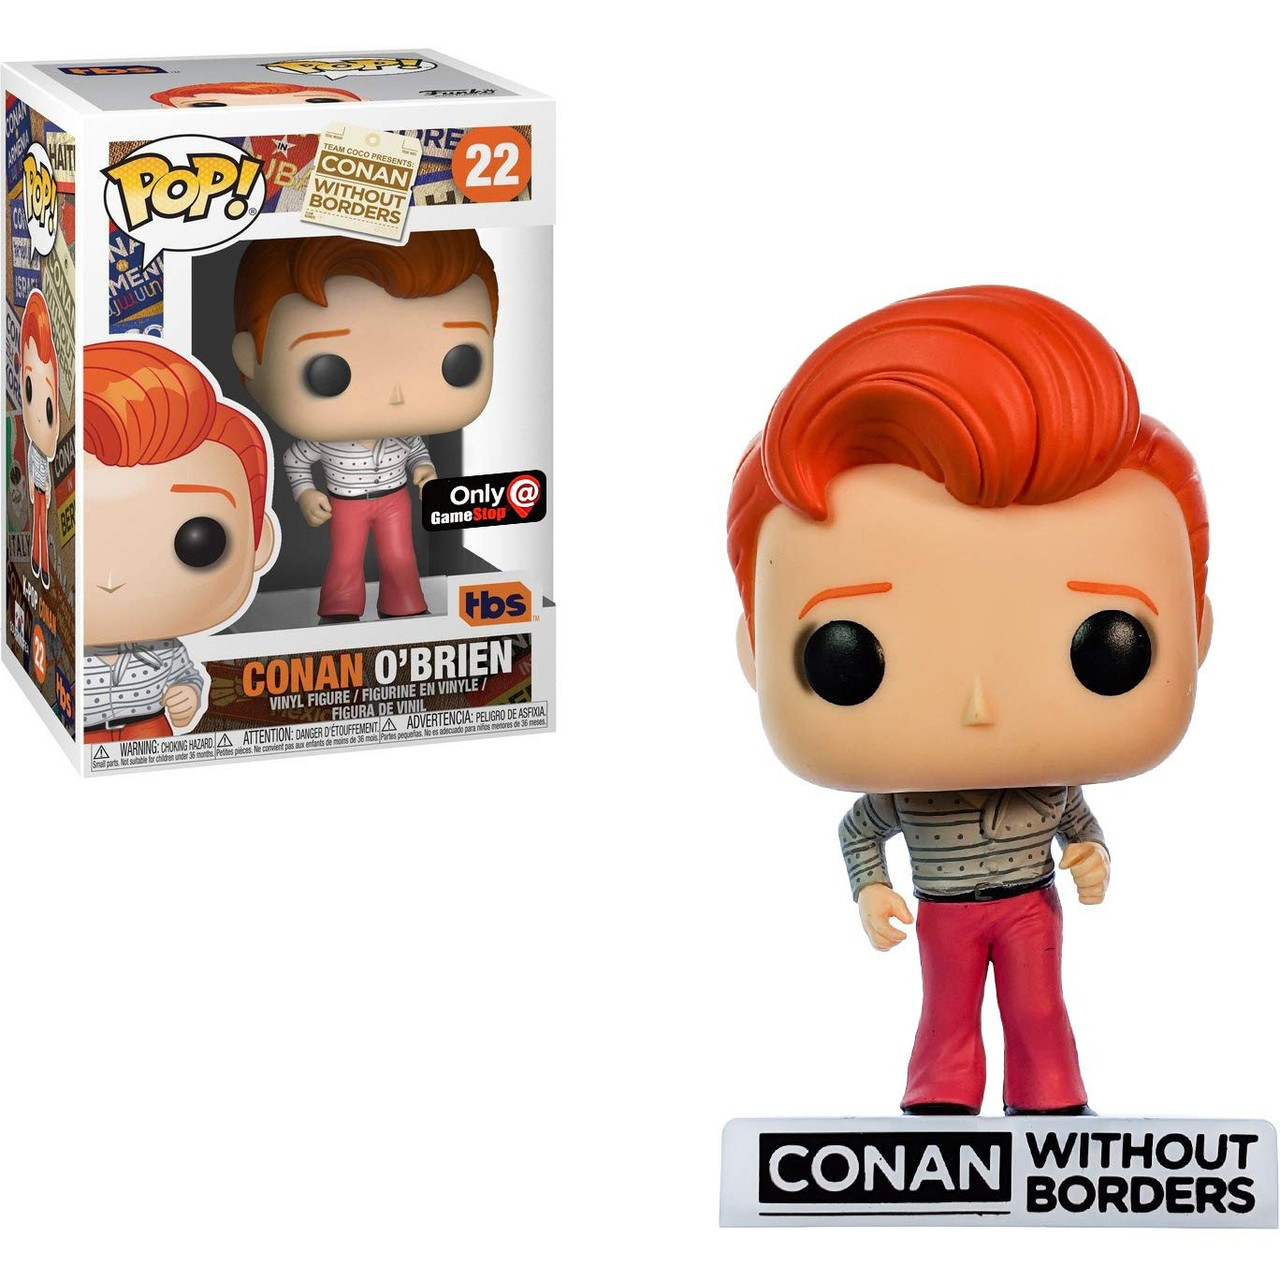 Vinyl Figure #18 **Box Conan O Brien Super Conan Gamestop Exclusive Pop